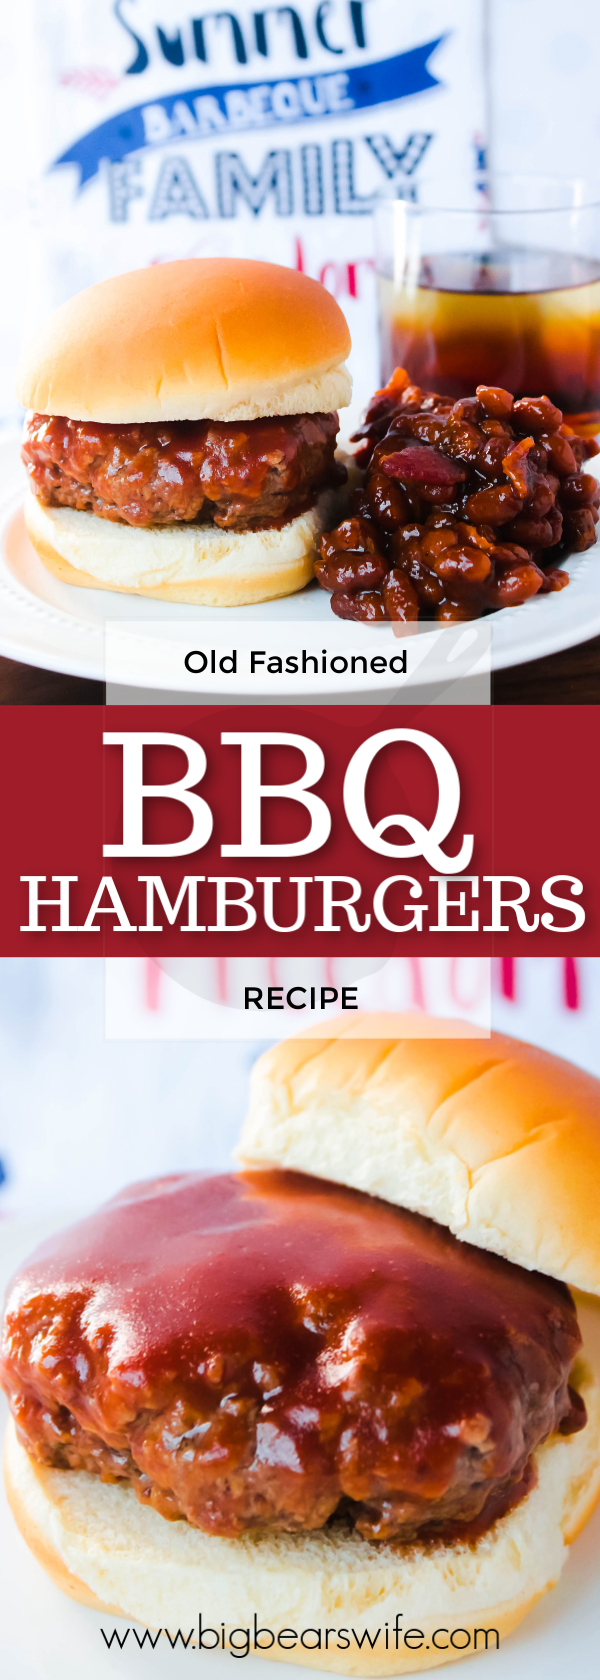 The recipe for these Old Fashioned BBQ Hamburgers came straight from my grandma's little wooden recipe box and they might be some of the best we've made!